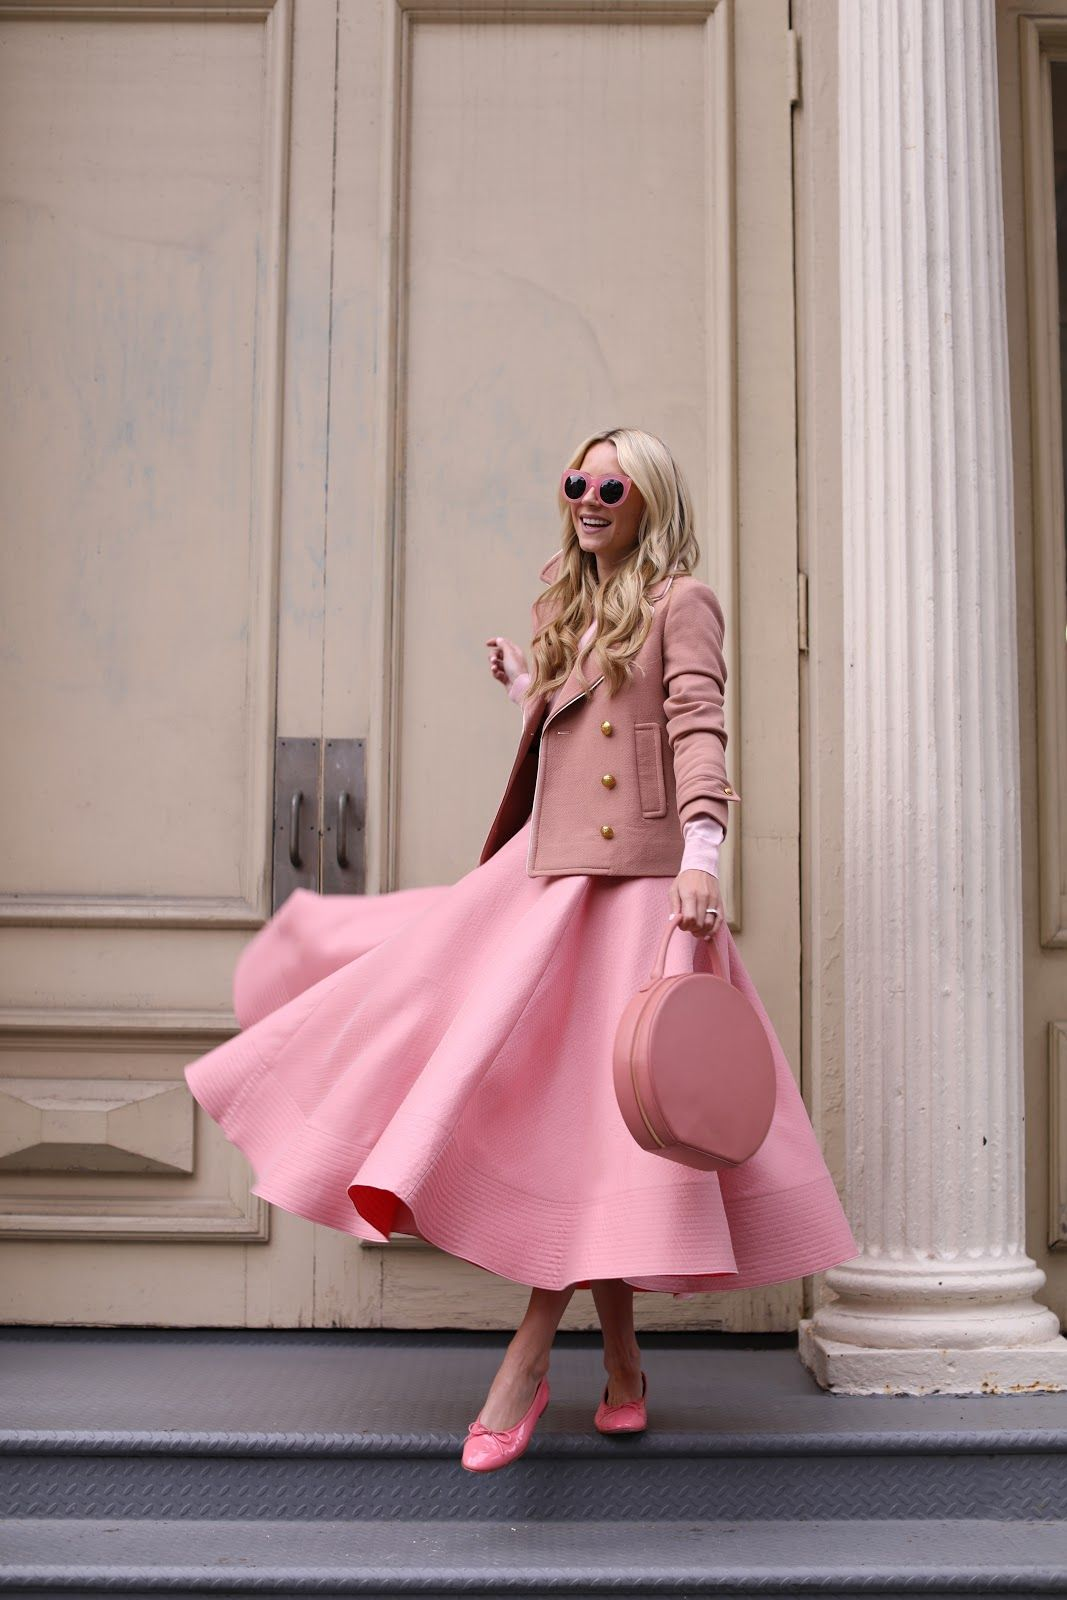 Chic lady in pink.